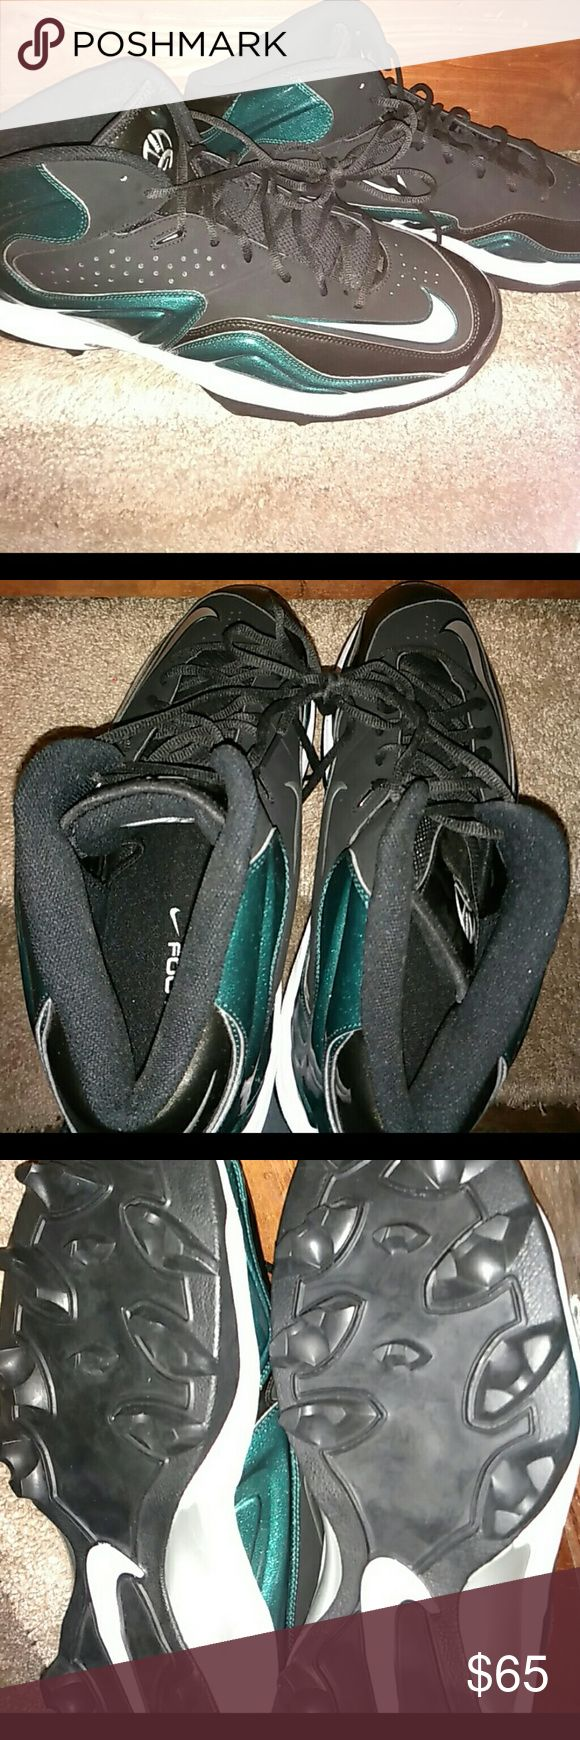 New Men's Nike Football Cleat Shoes /size 17 NWOT Men's Nike Football Shoes. Cleats on bottom as shown.  These are Emerald green with a hint of shimmer to them and black with white accents.  Never worn.  I assume we're customs since they are a size 17 but not positive. Nike Shoes Athletic Shoes